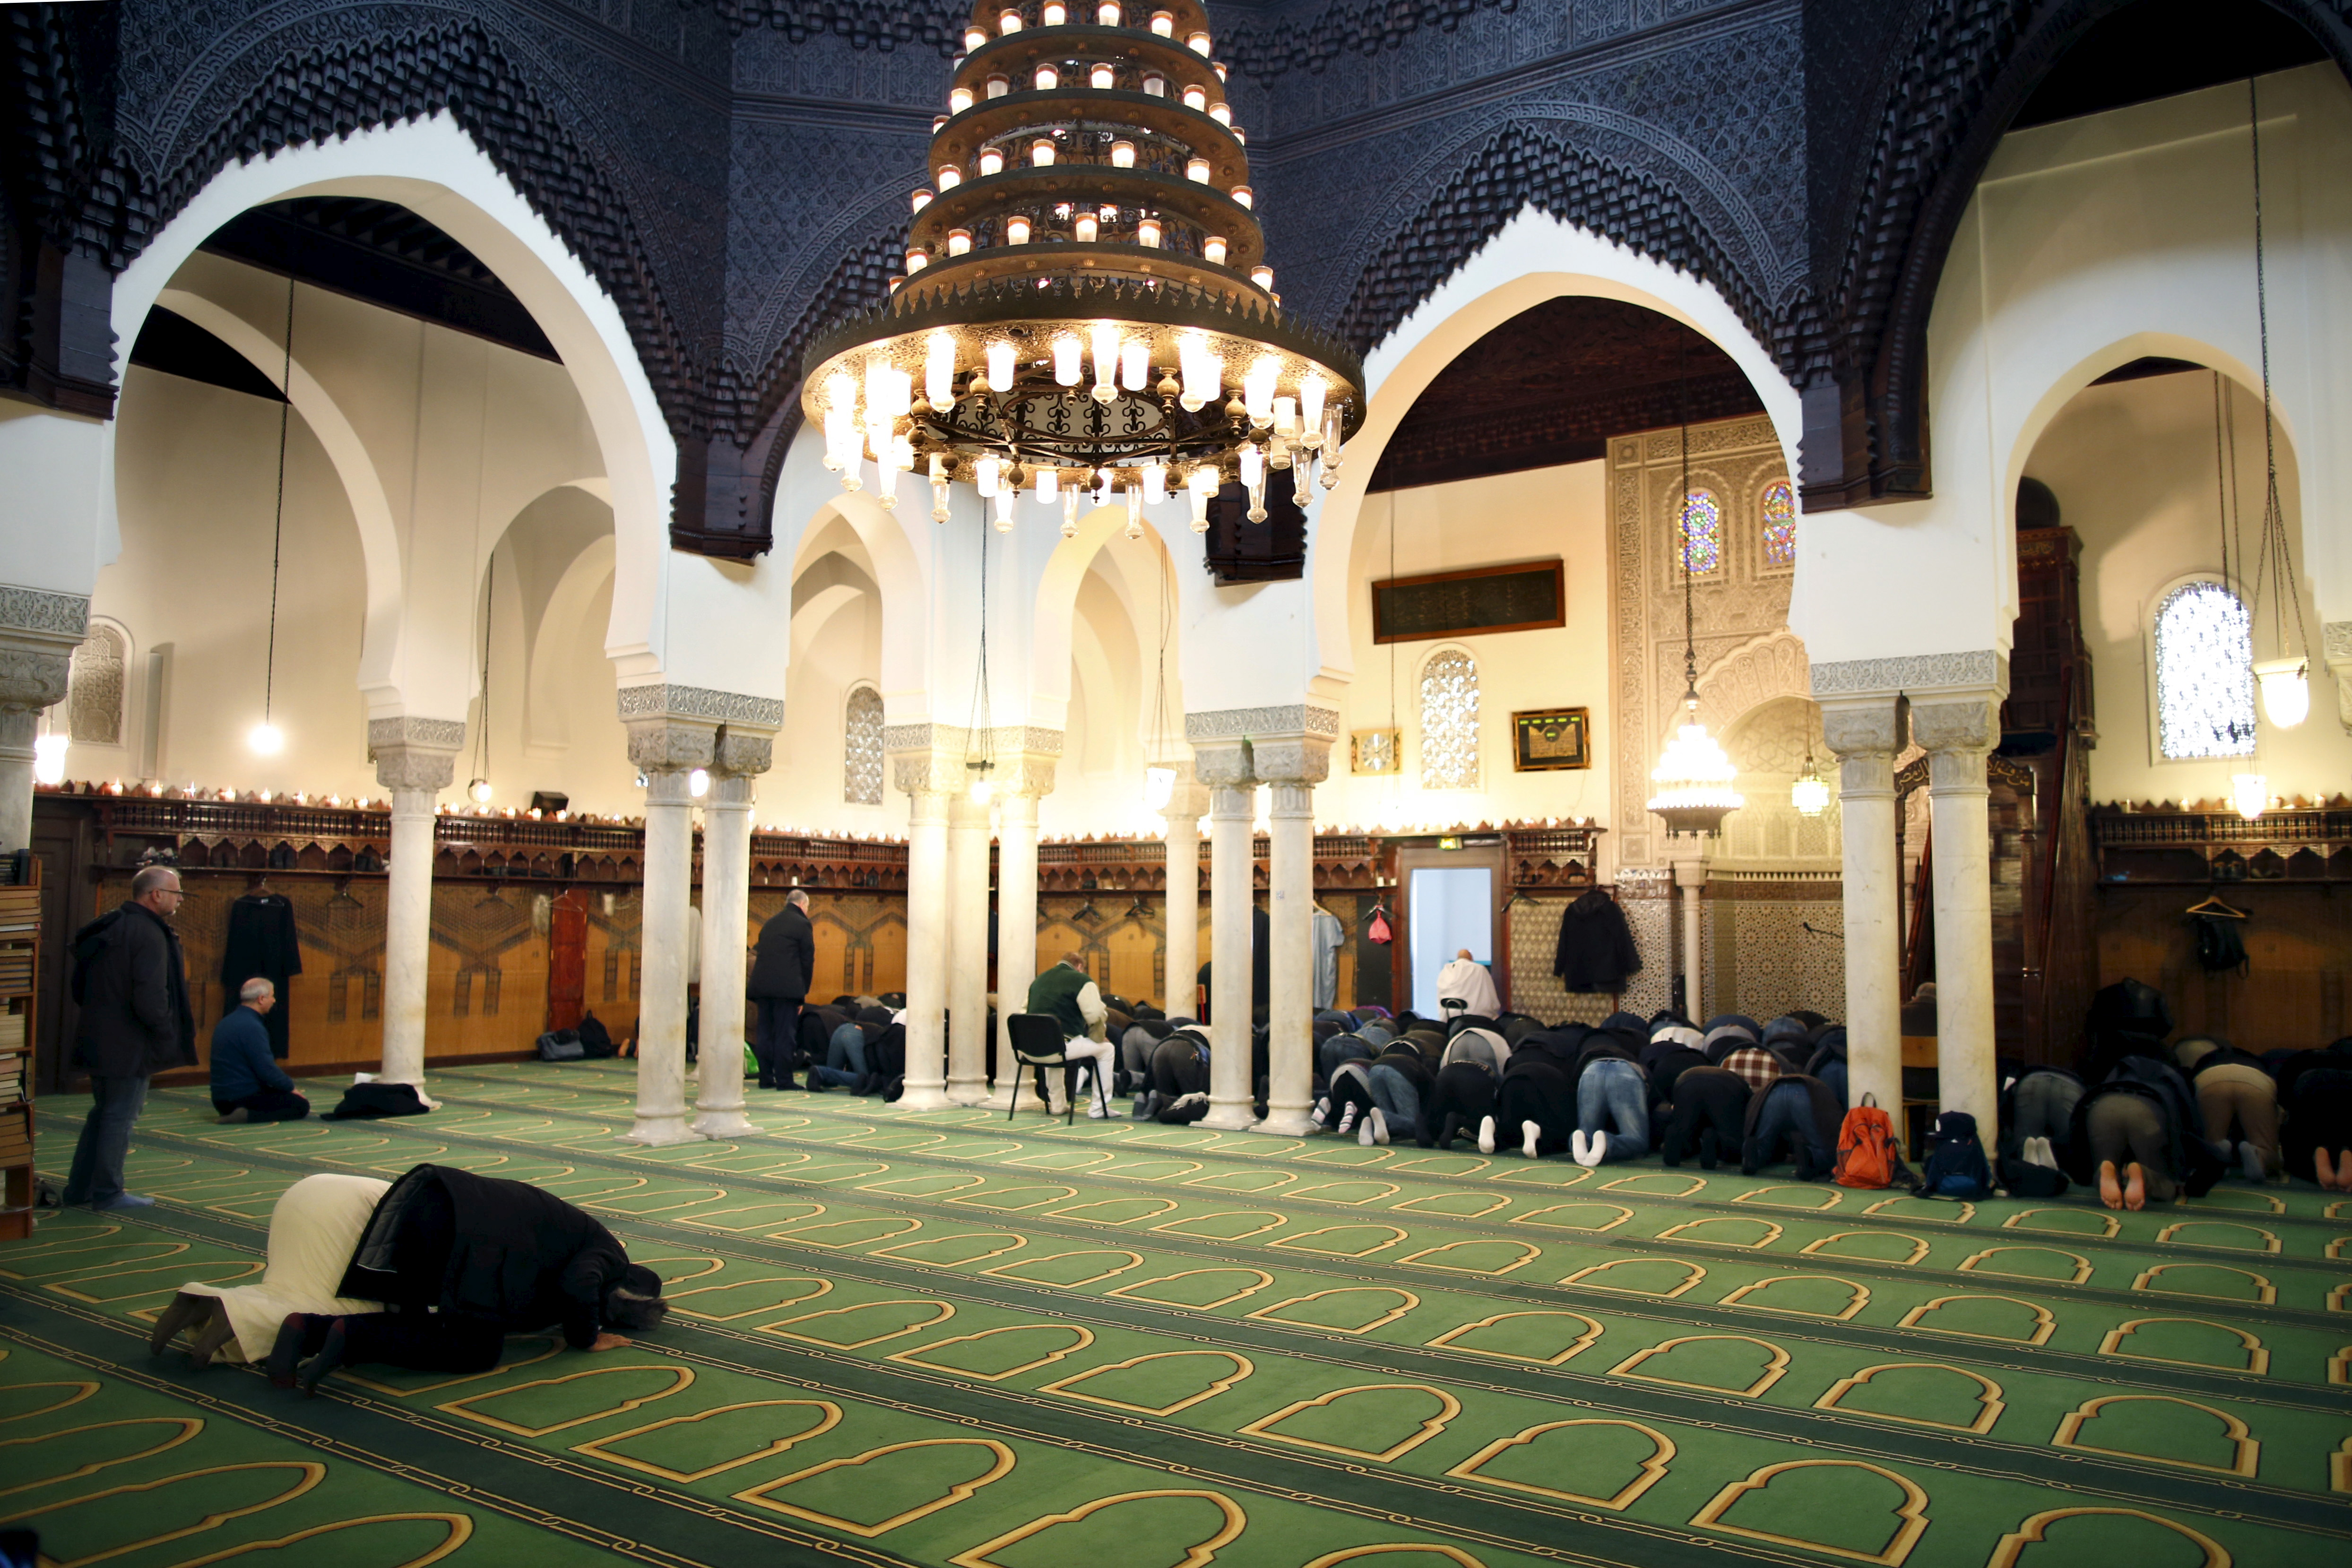 Members of the Muslim community pray in the Paris Grand Mosque during an open day weekend for mosques in France, January 10, 2016. REUTERS/Charles Platiau - RTX21QR1